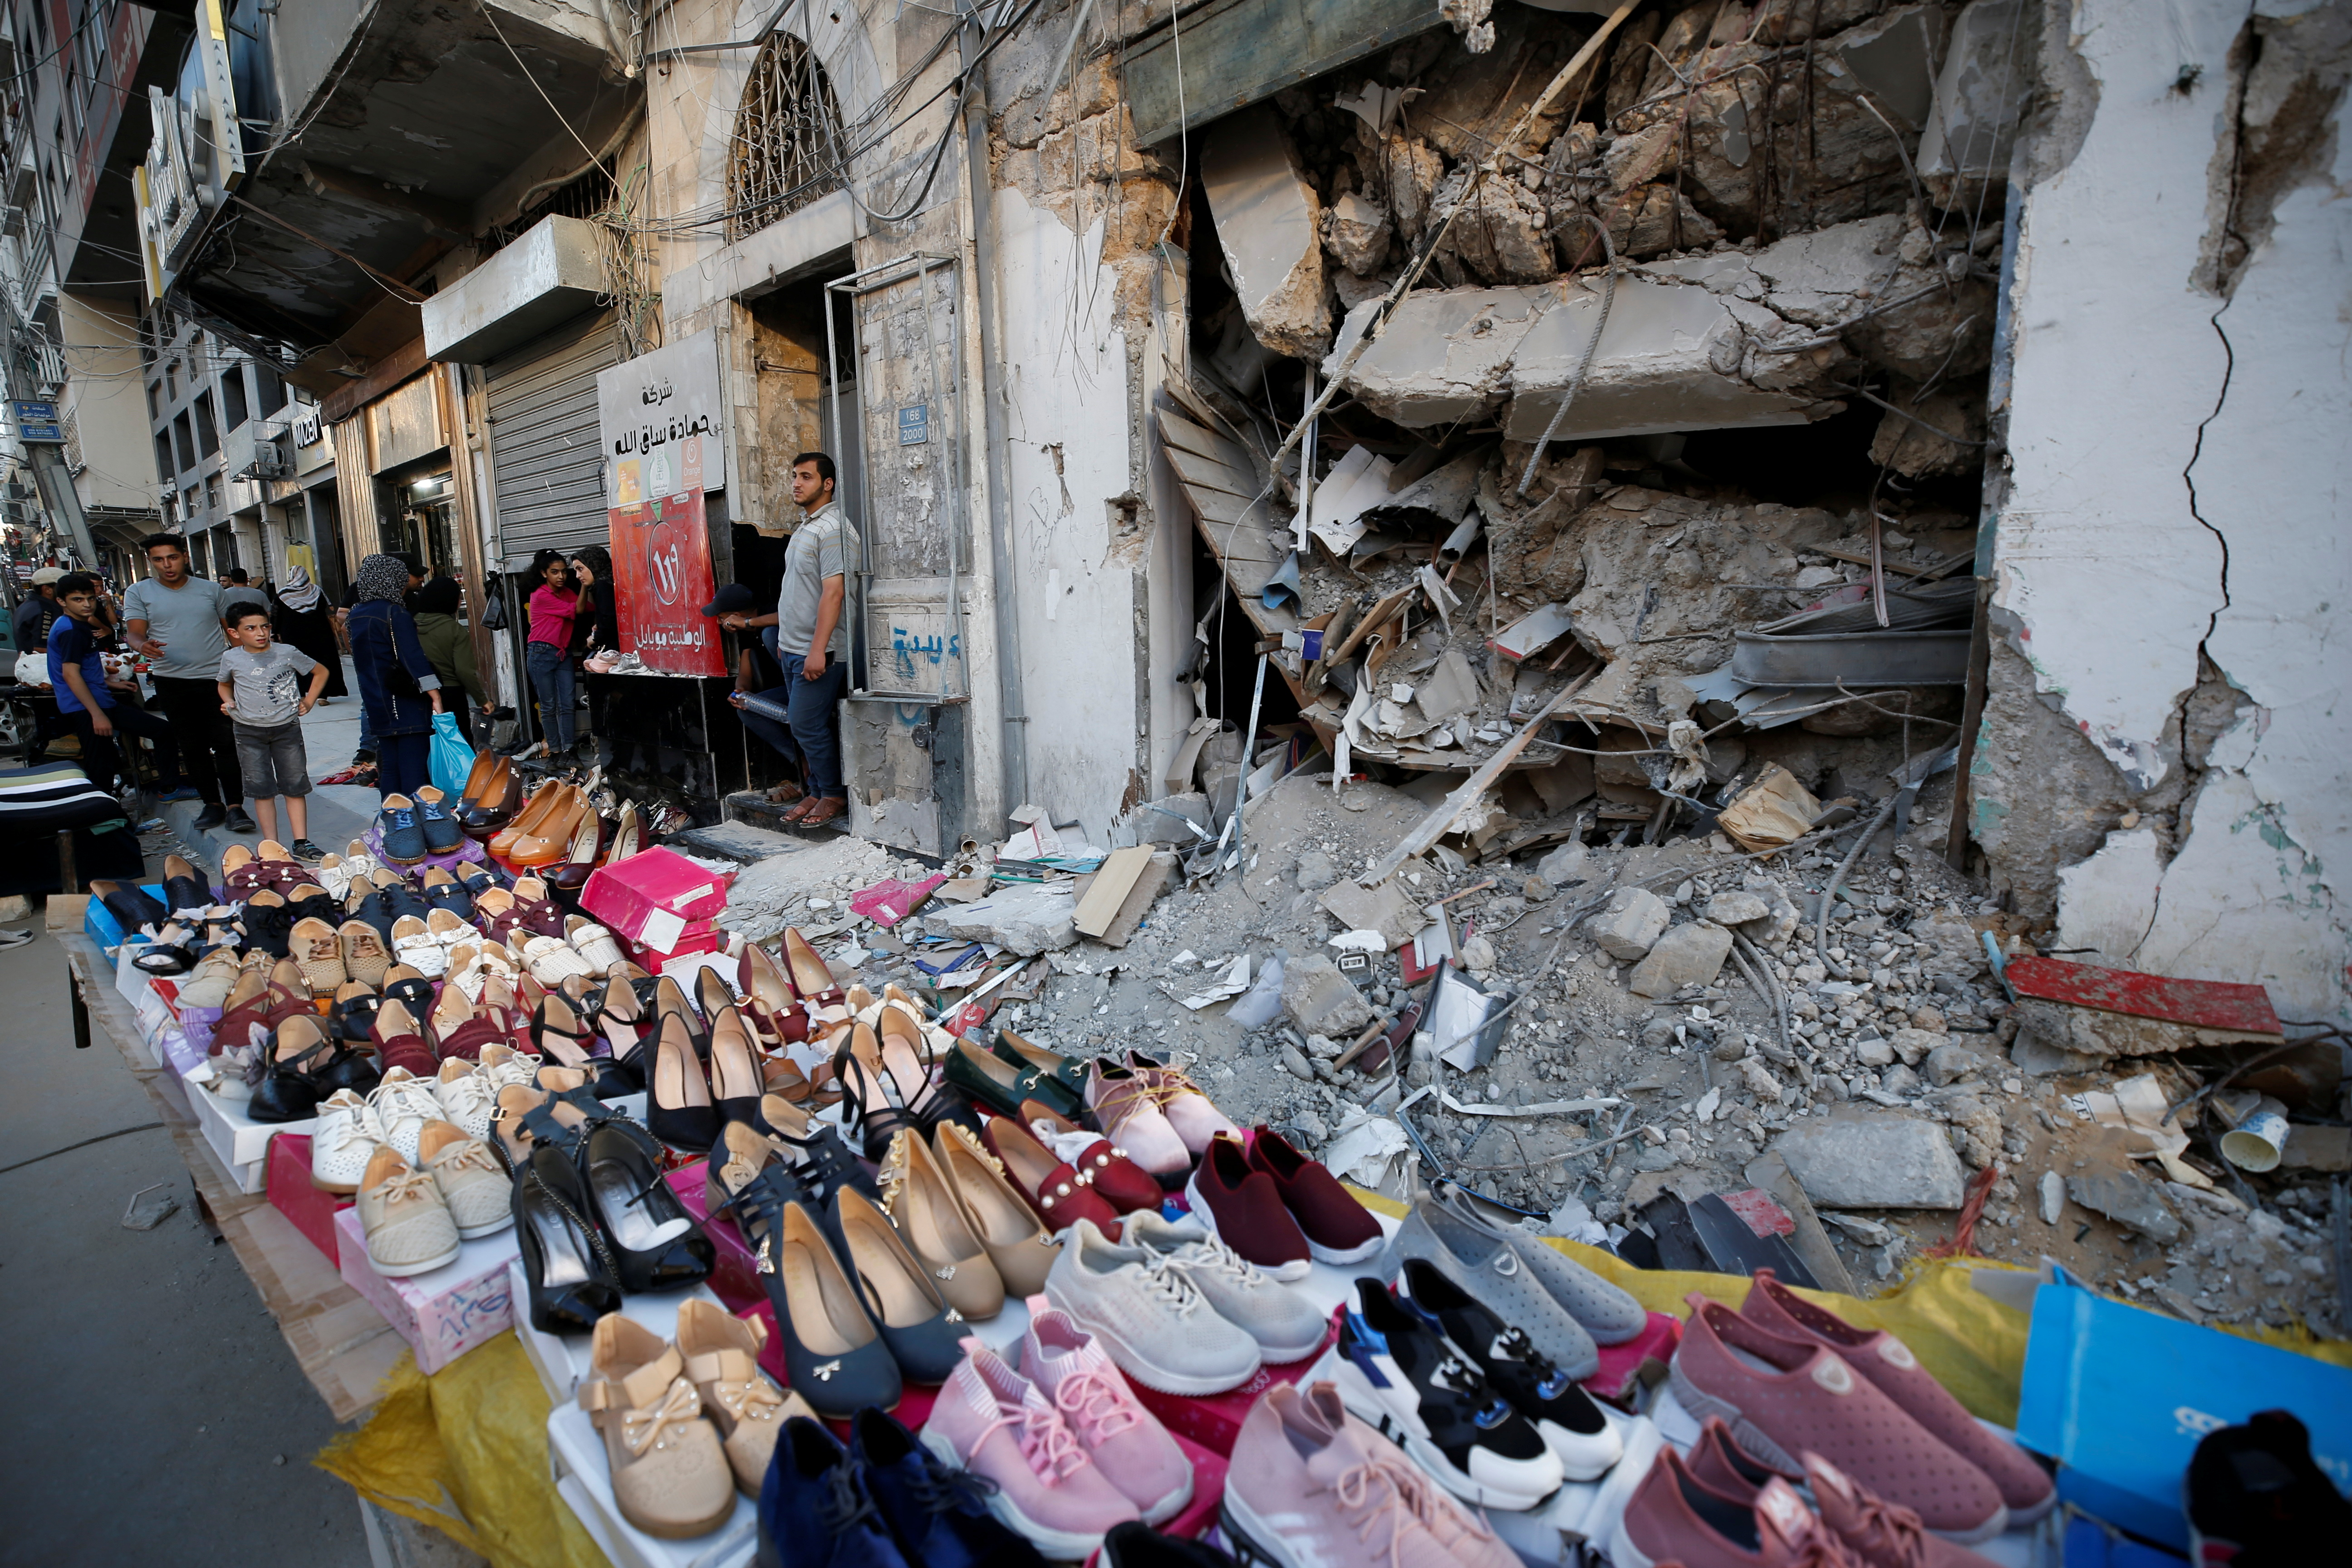 A Palestinian sells shoes on a stall near the rubble of his old shoe store that has been destroyed in an Israeli air strike, ahead of Eid Al-Adha Muslim holiday, in Gaza City, July 14, 2021. Picture taken July 14, 2021. REUTERS/Mohammed Salem